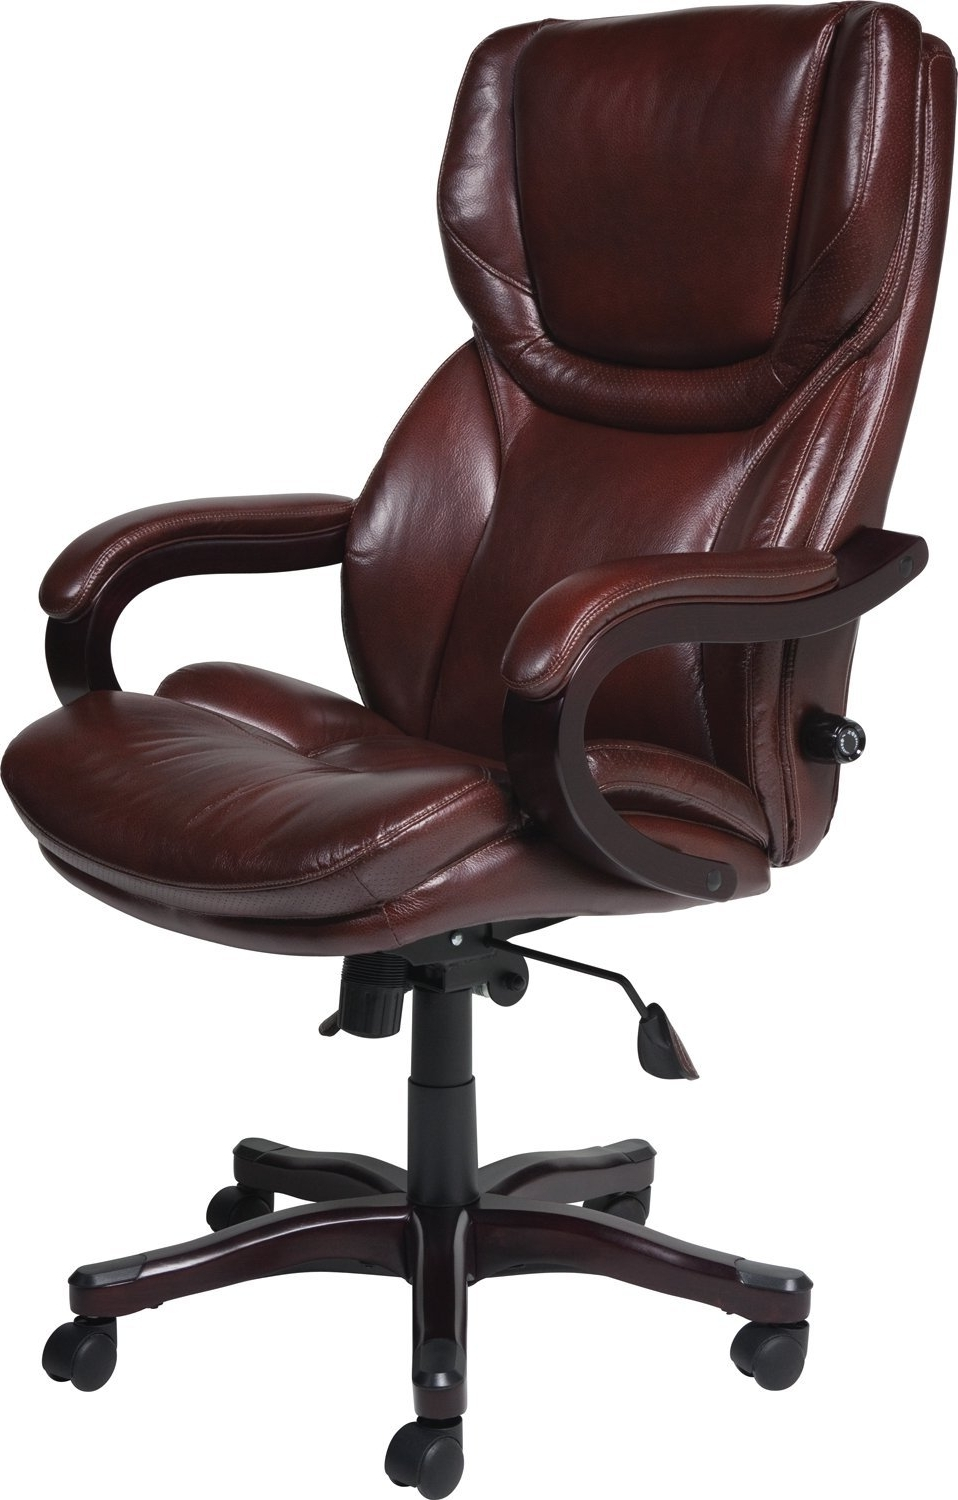 Best Computer Chairs For Bad Backs Inside Newest Heavy Duty Executive Office Chairs (View 3 of 20)